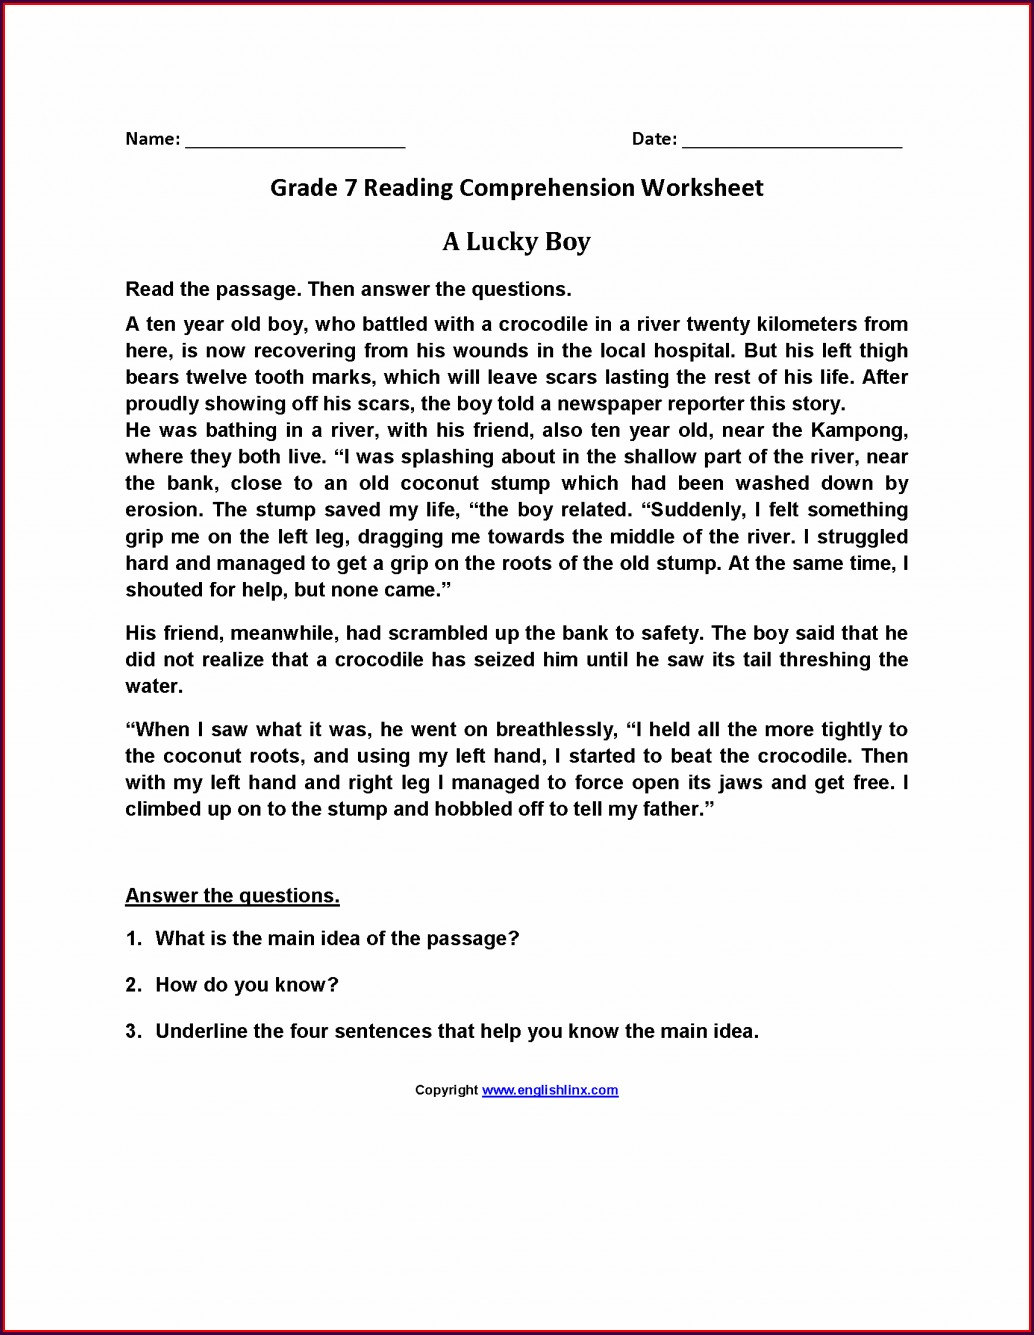 Comprehension Worksheet For Grade 7 English